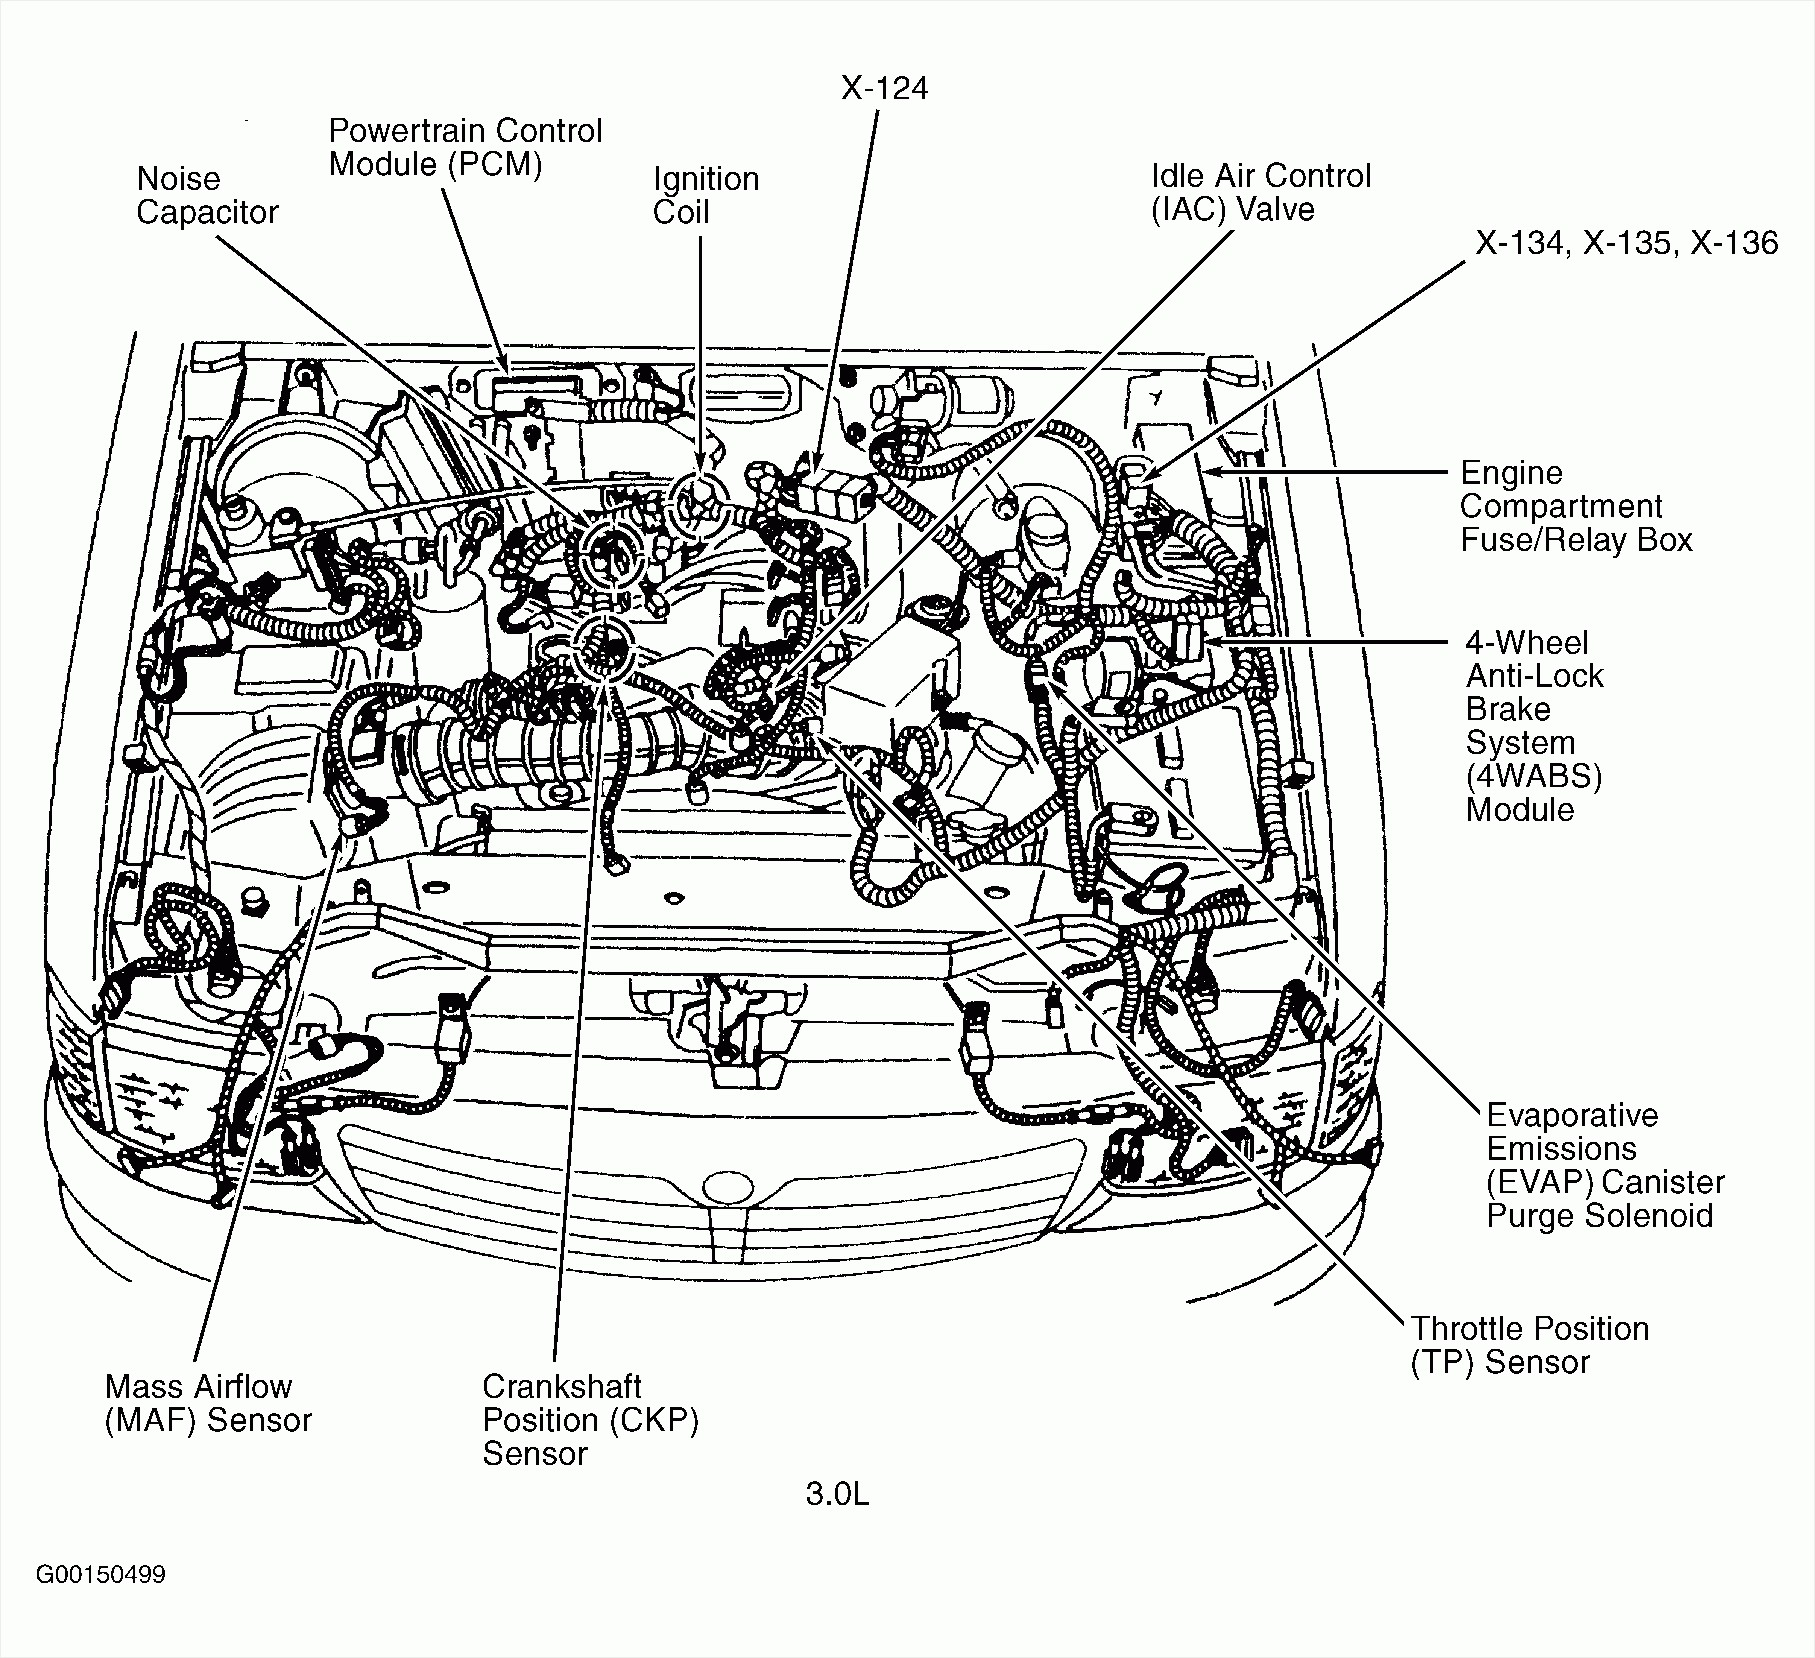 hight resolution of 2003 miata engine diagram wiring diagram log2000 mazda miata engine diagram wiring diagram featured 2003 mazda